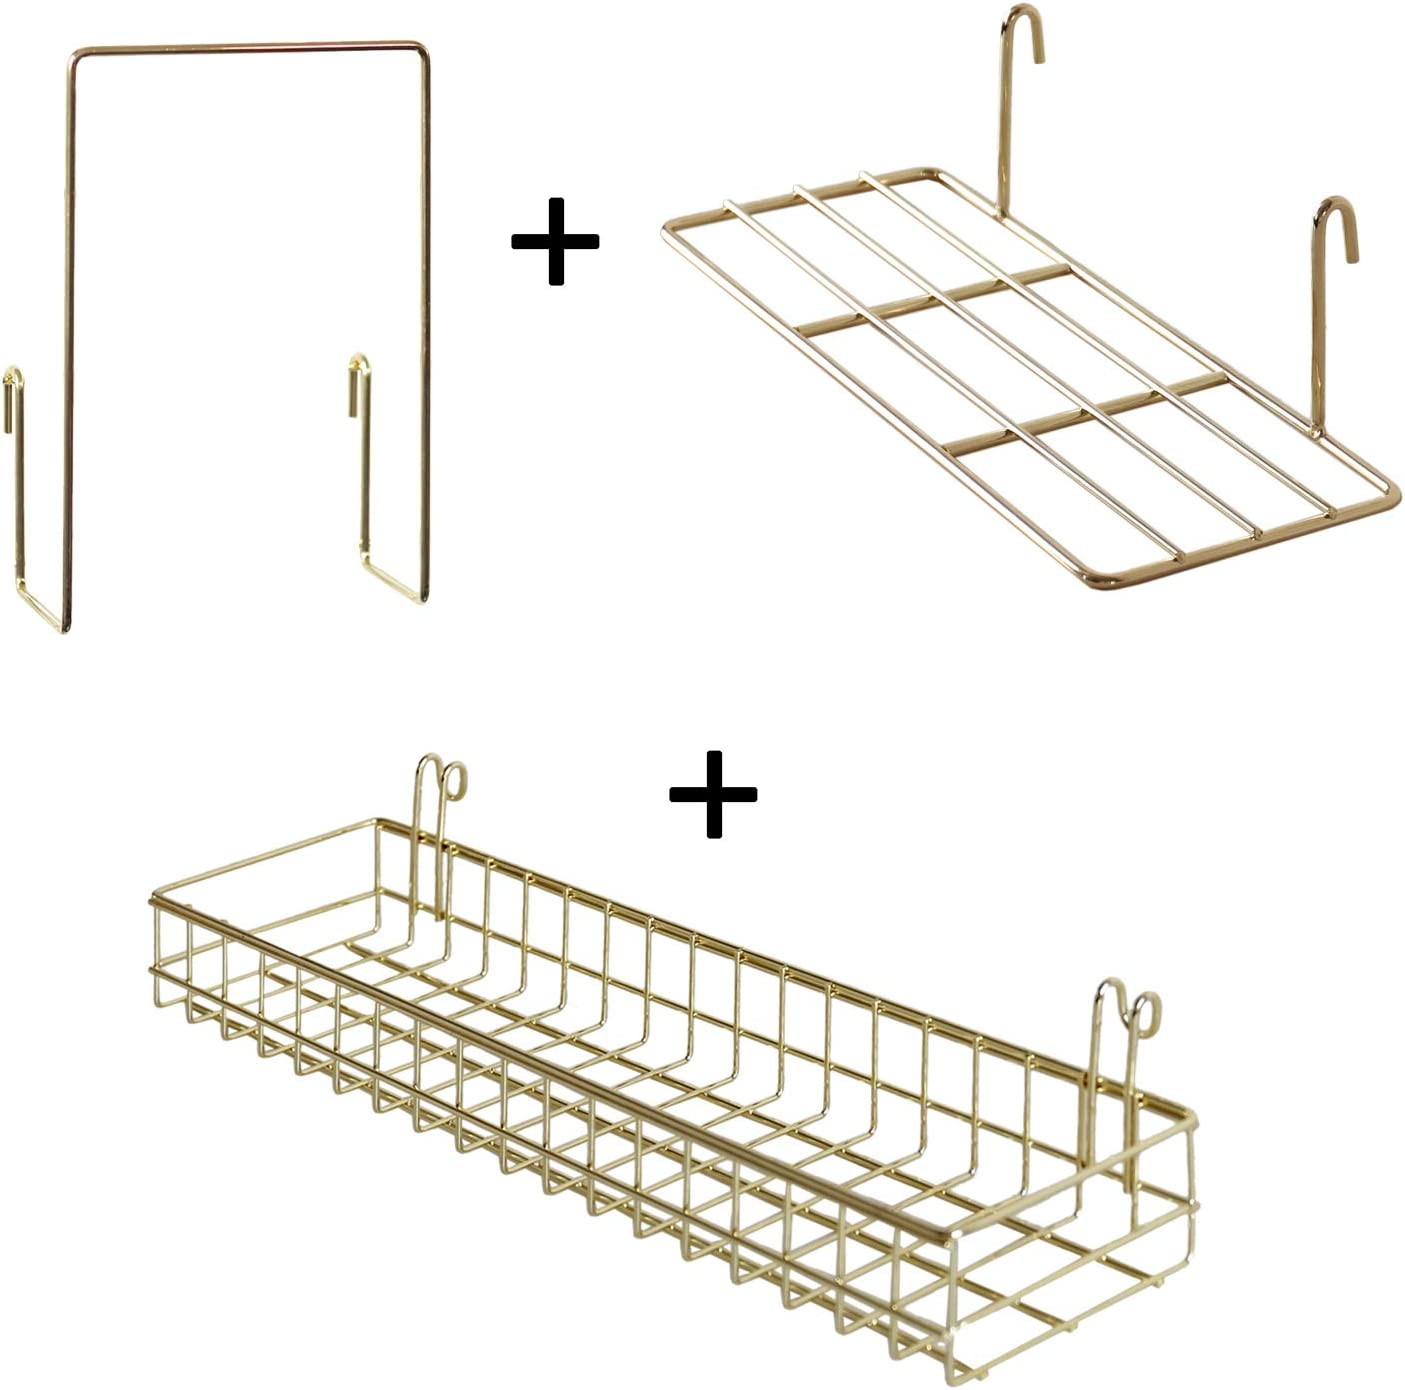 FRIADE Gold Grid Basket With Hooks,Bookshelf,Display Shelf for Wall Grid Panel,Wall Mount Organizer and Storage Shelf Rack for Home Supplies,1 Set of 3 (Gold)